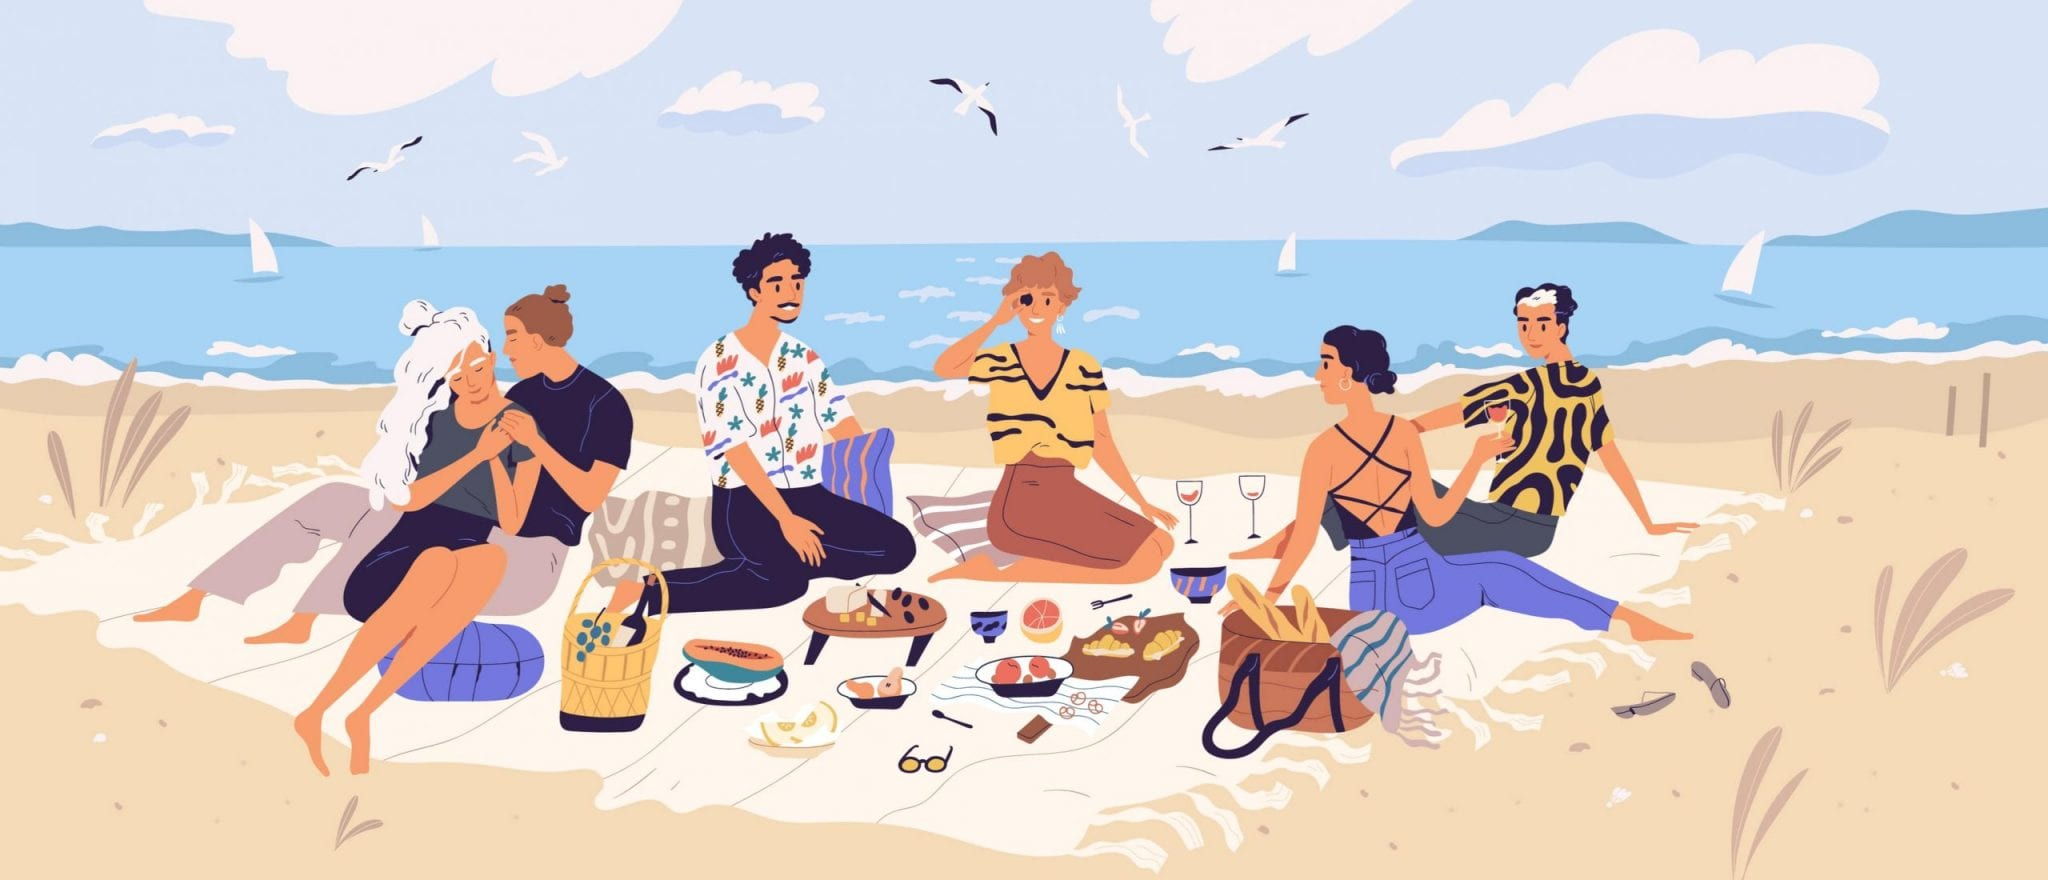 Group of Happy Friends at Picnic on Seashore. Young Smiling Men and Women Eating Food on Sandy Beach. Cute Funny People Having Lunch Together on Sea Shore.